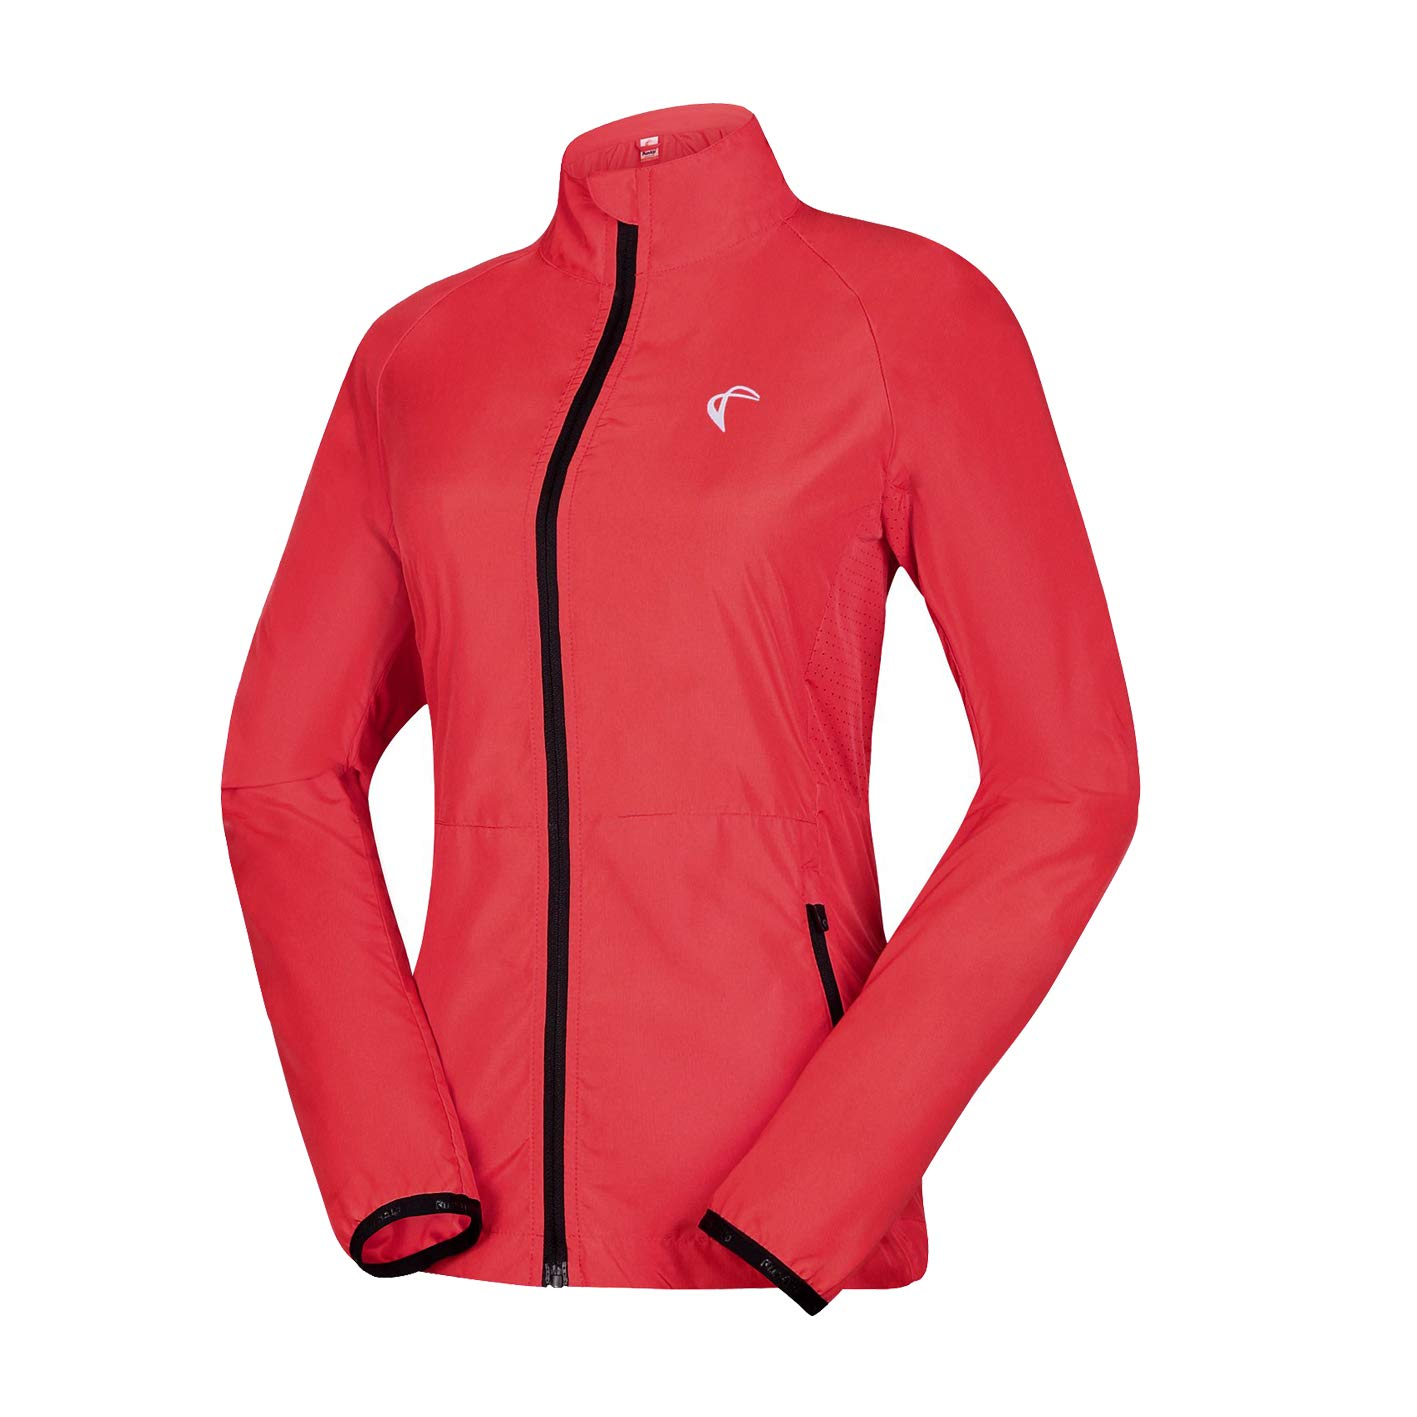 J.CARP Women's Packable Windbreaker Jacket, Super Lightweight and Visible, Outdoor Active Cycling Running Skin Coat, Red L by J.CARP